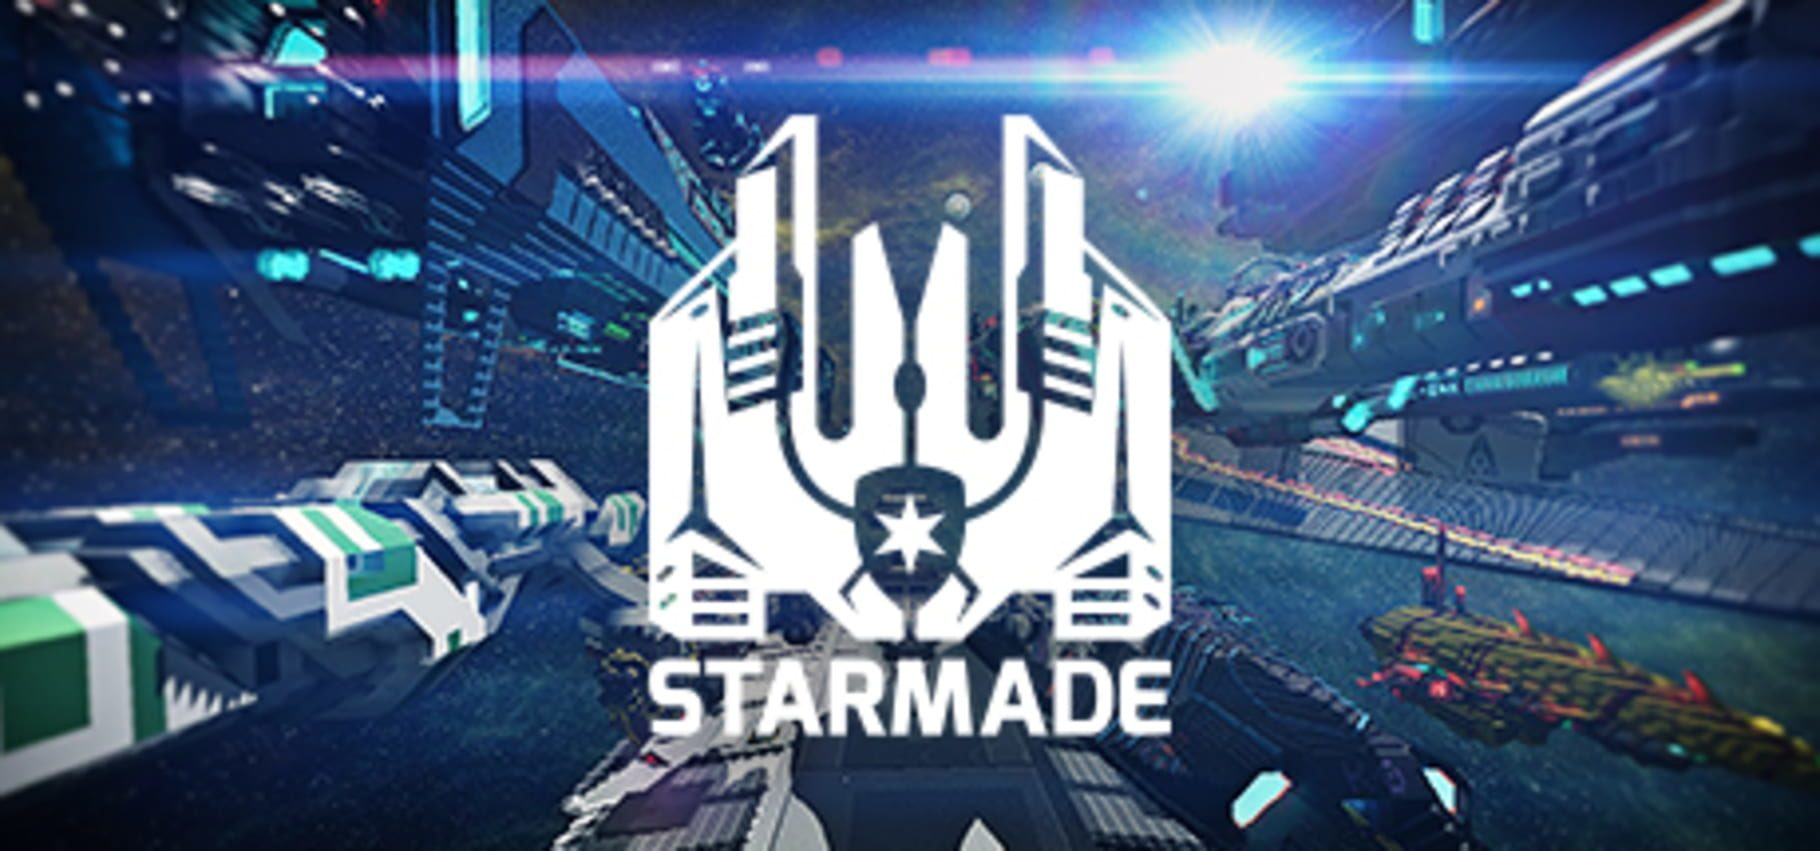 buy Starmade cd key for all platform